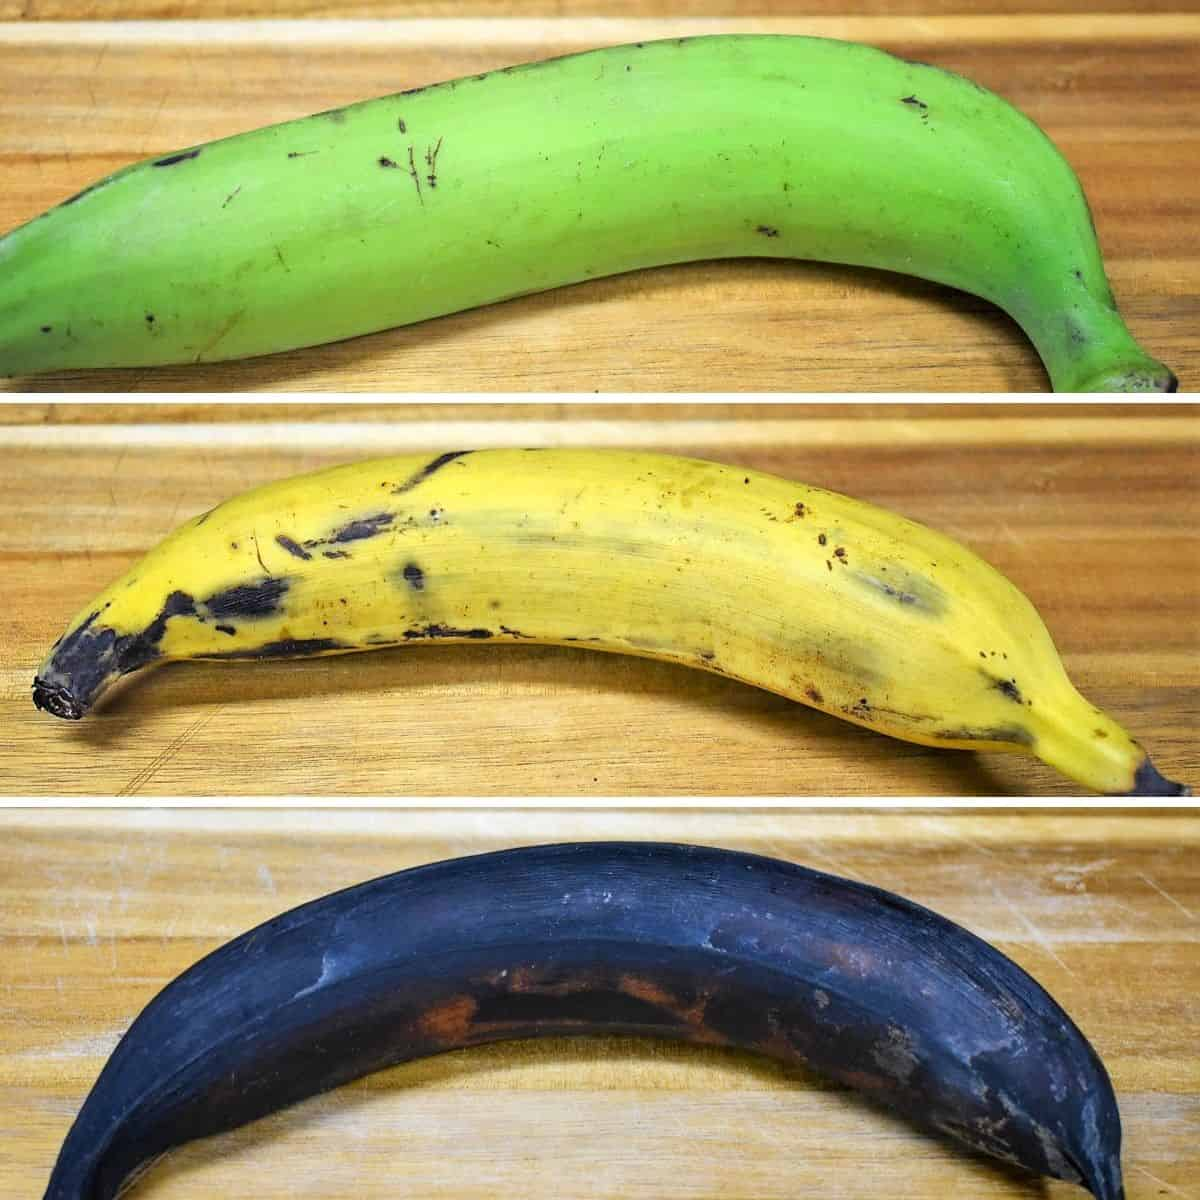 Three plantains in different levels of ripeness, green, yellow and black.